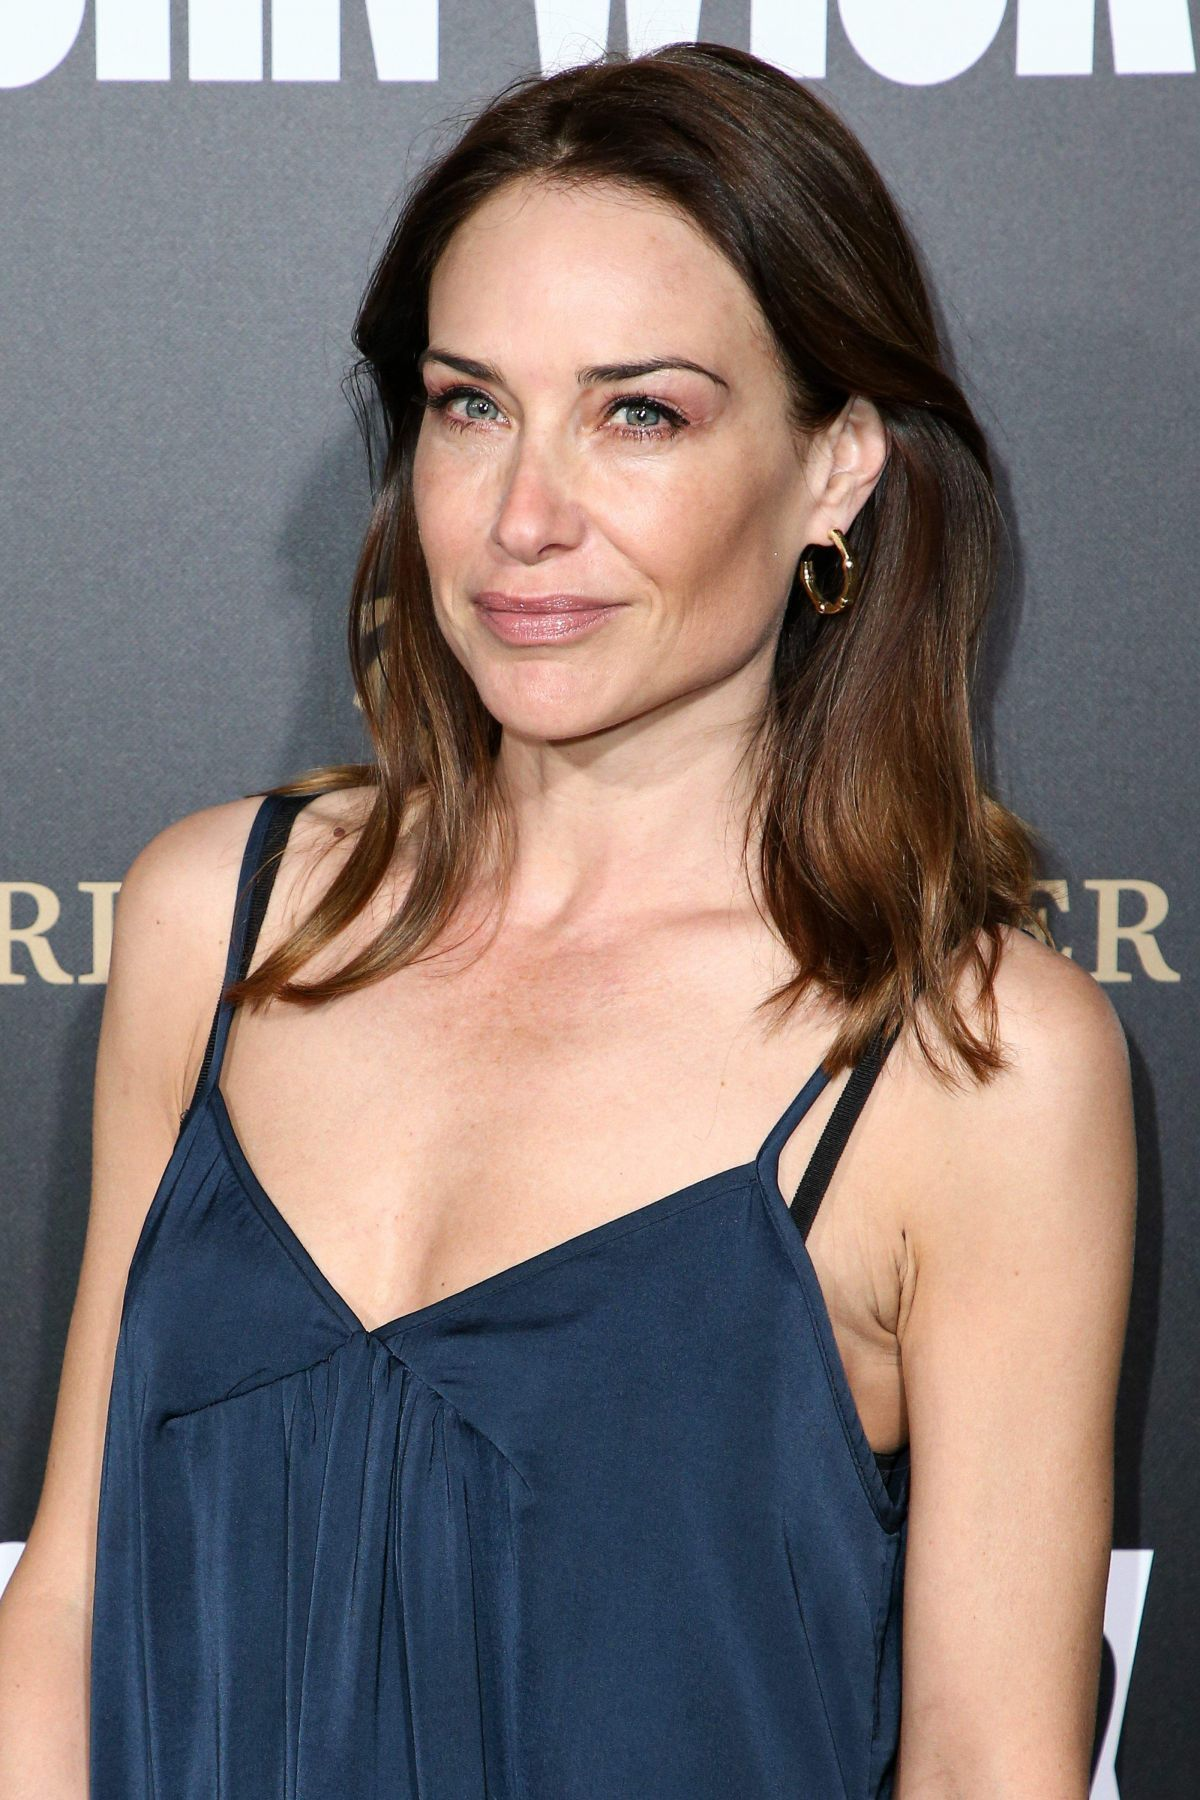 Photos Claire Forlani nude (96 foto and video), Pussy, Leaked, Twitter, swimsuit 2019